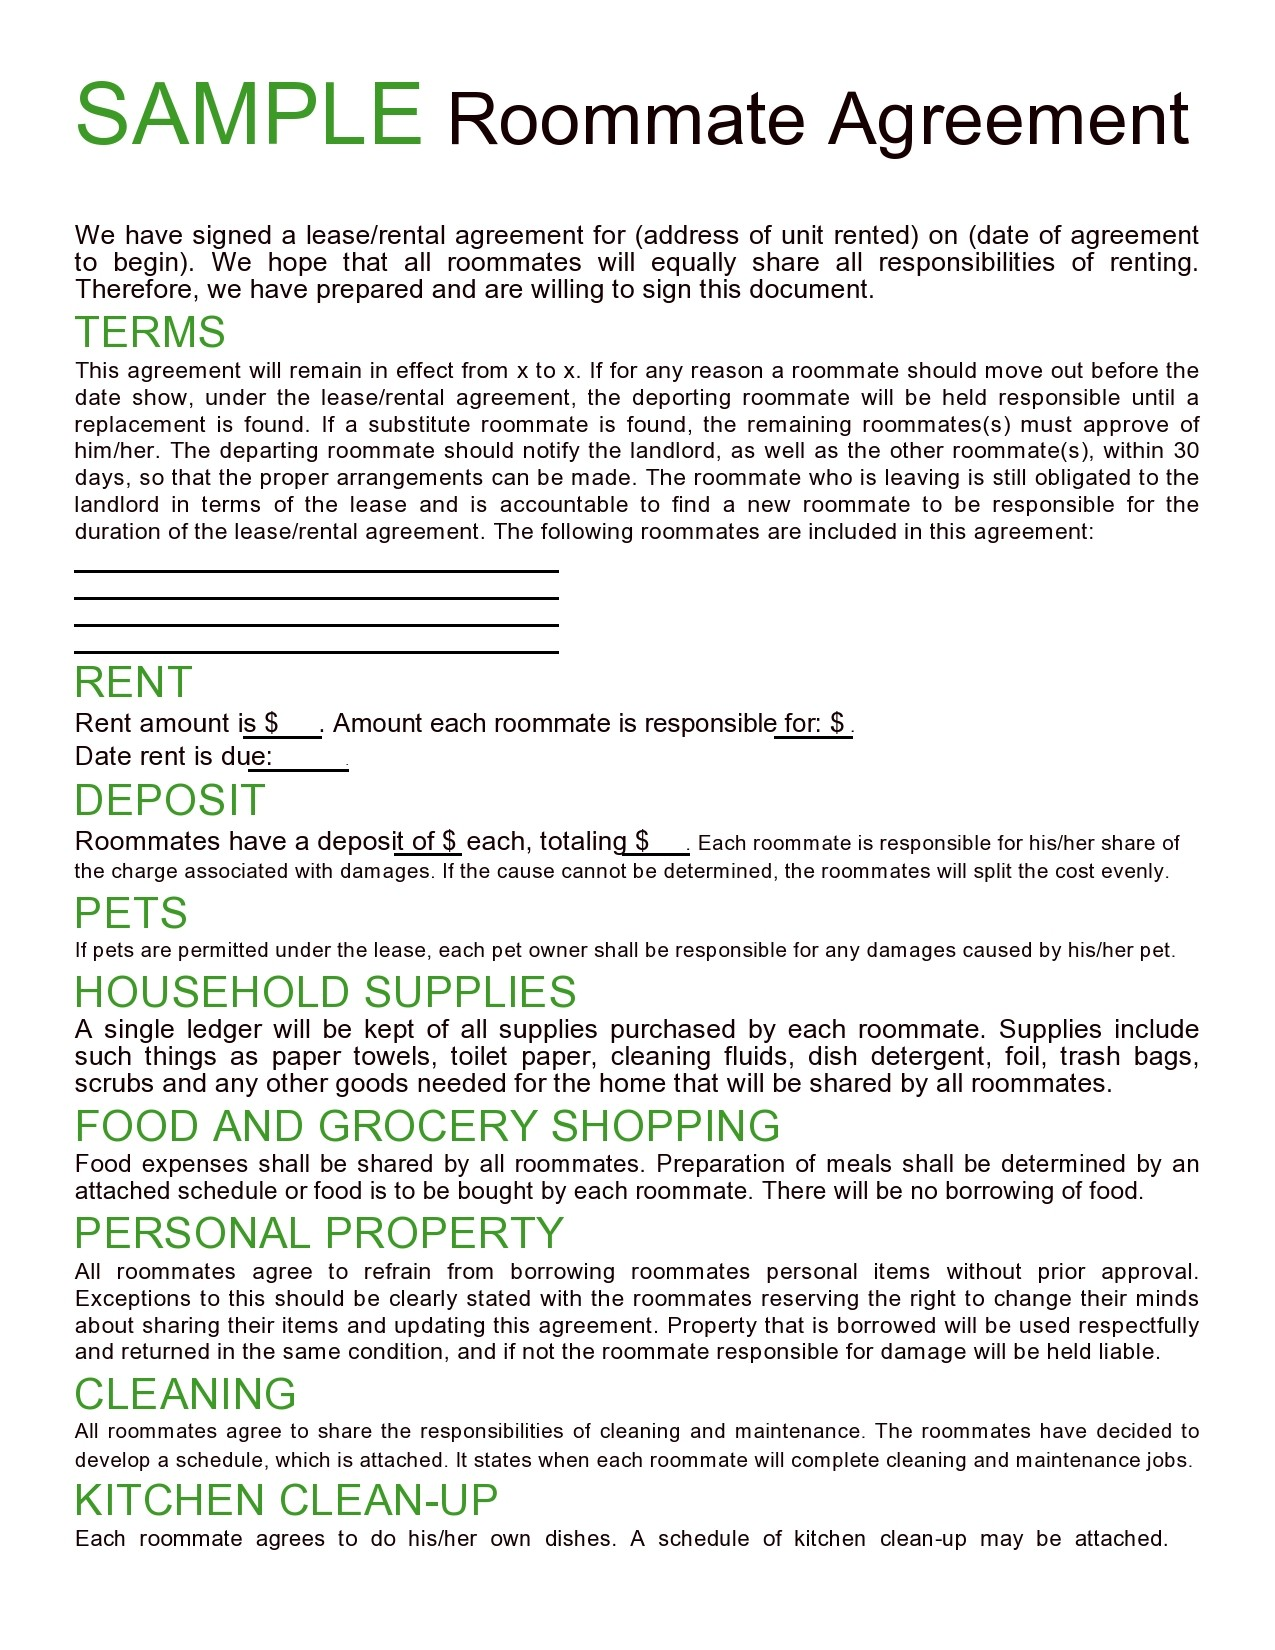 Free roommate agreement template 22